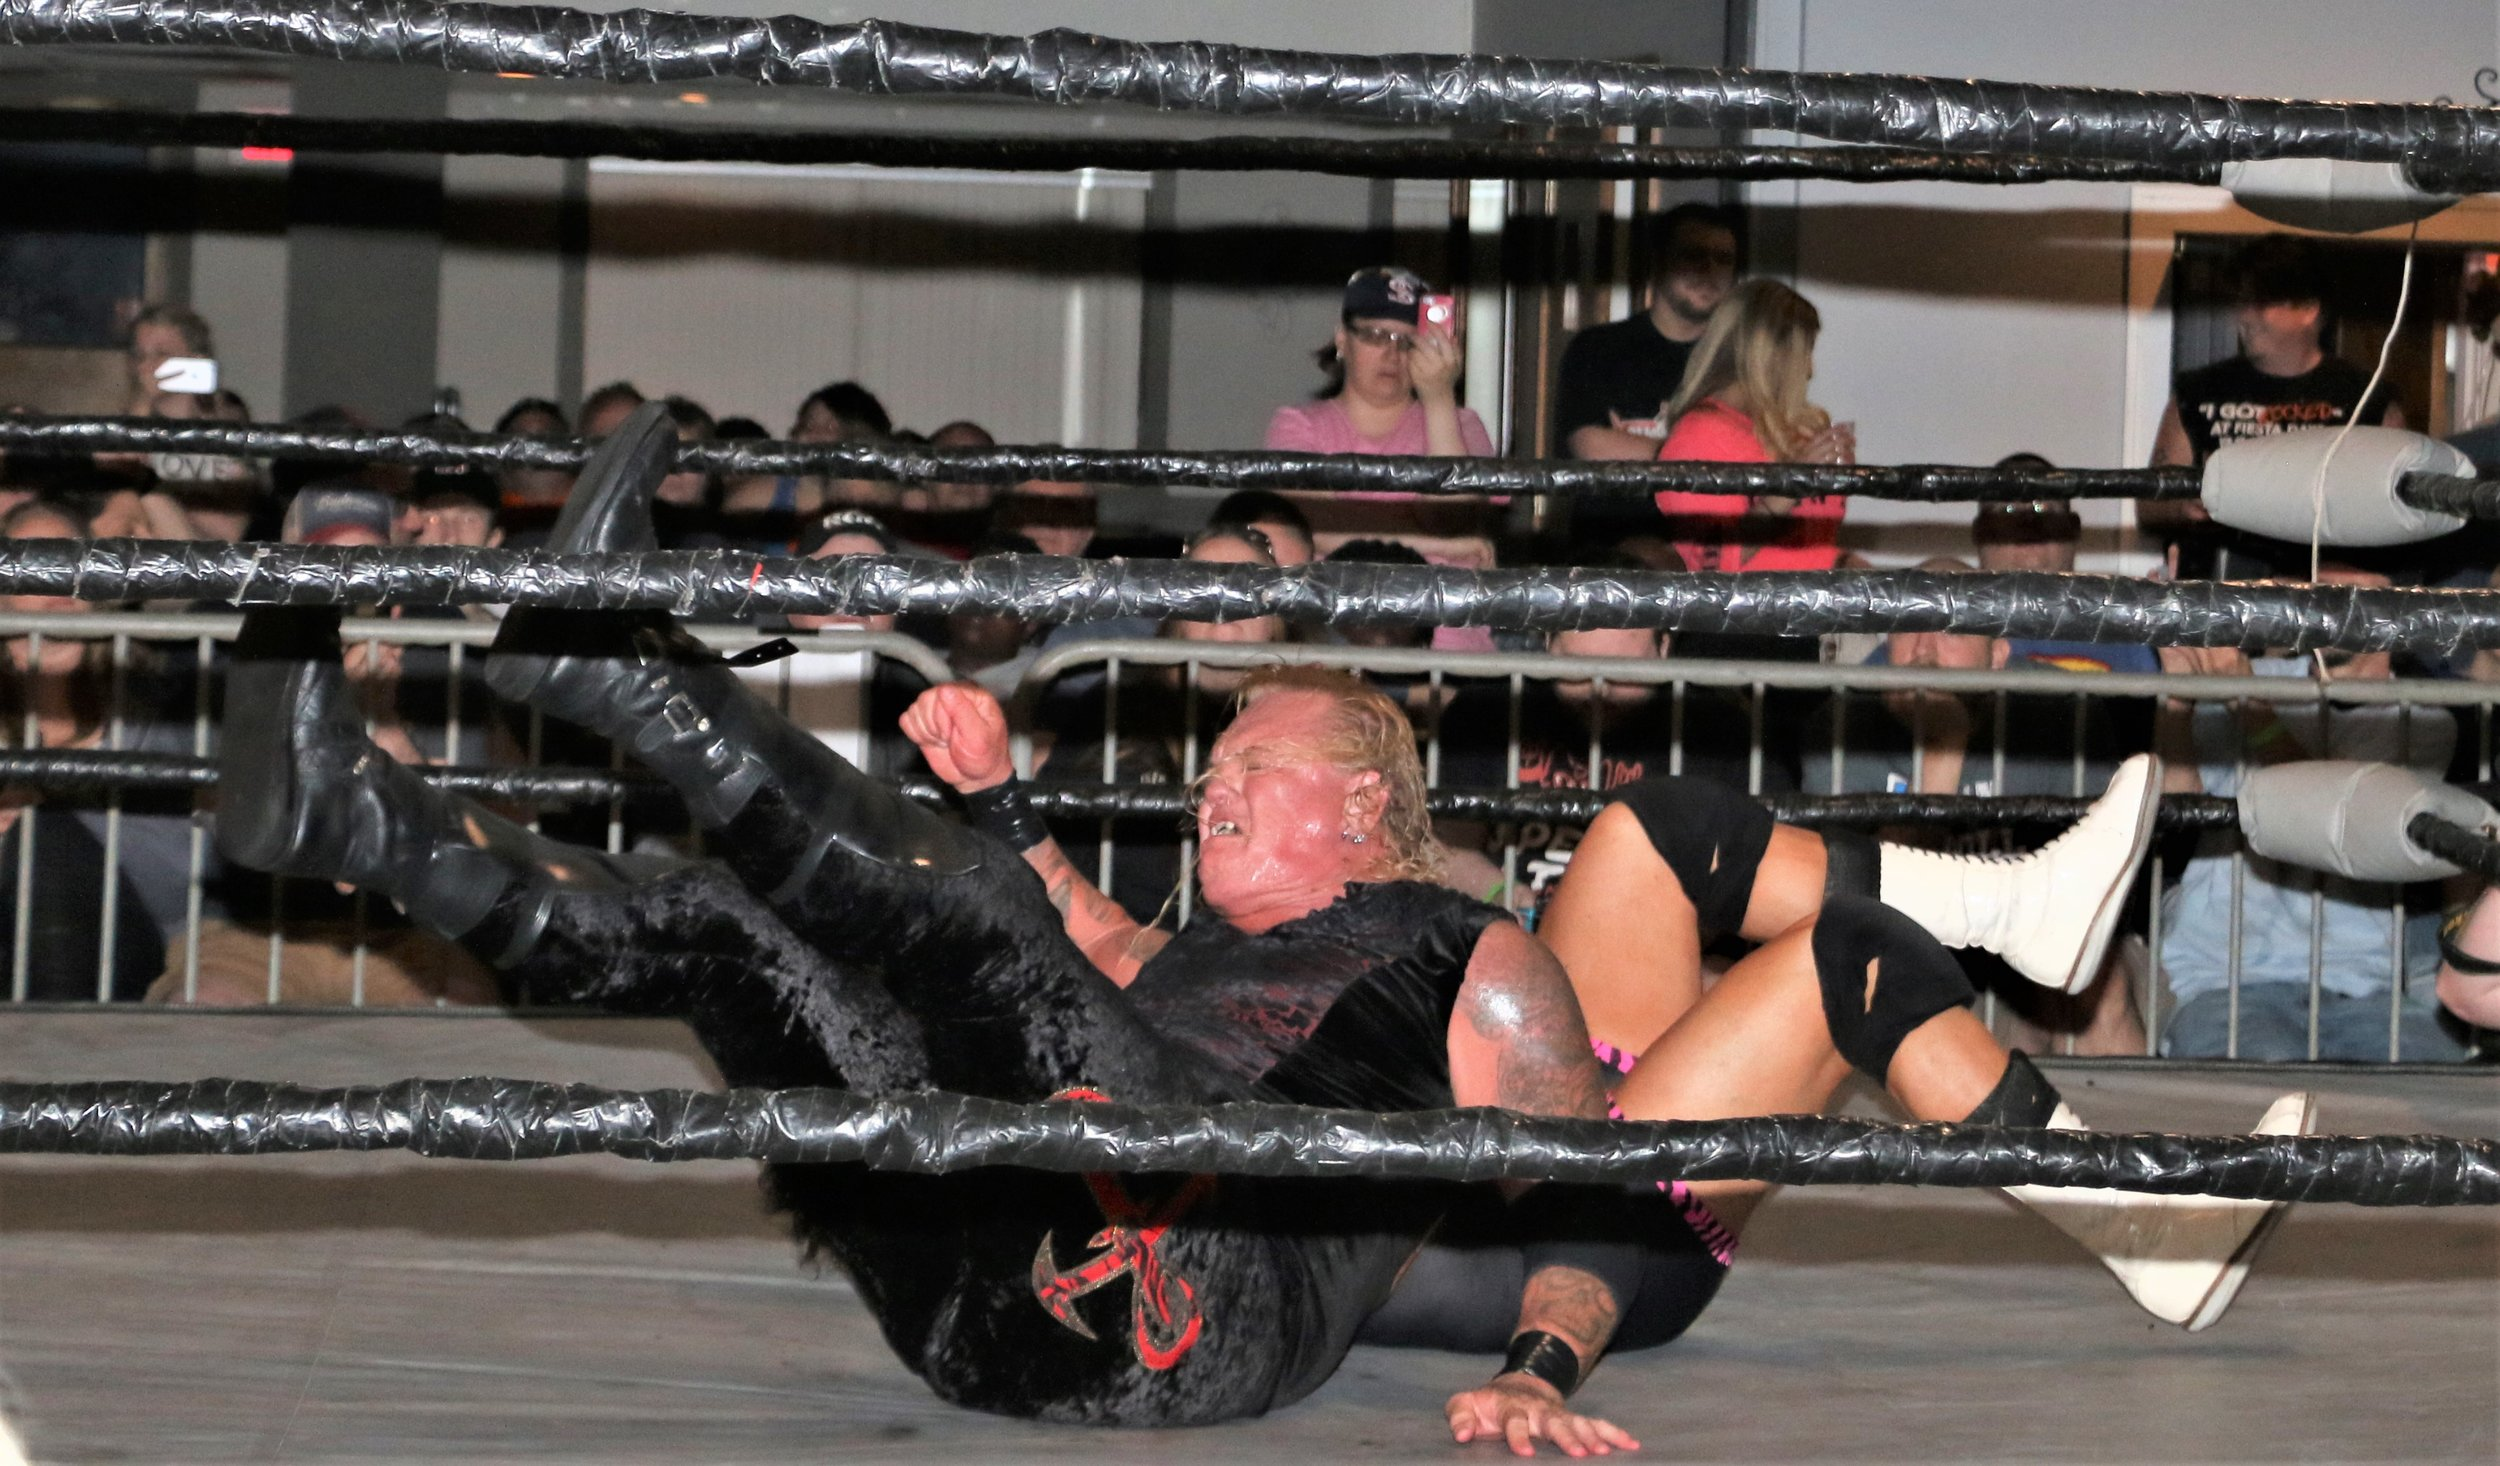 Gangrel drops an elbow on Dr. Jeff Luxon.